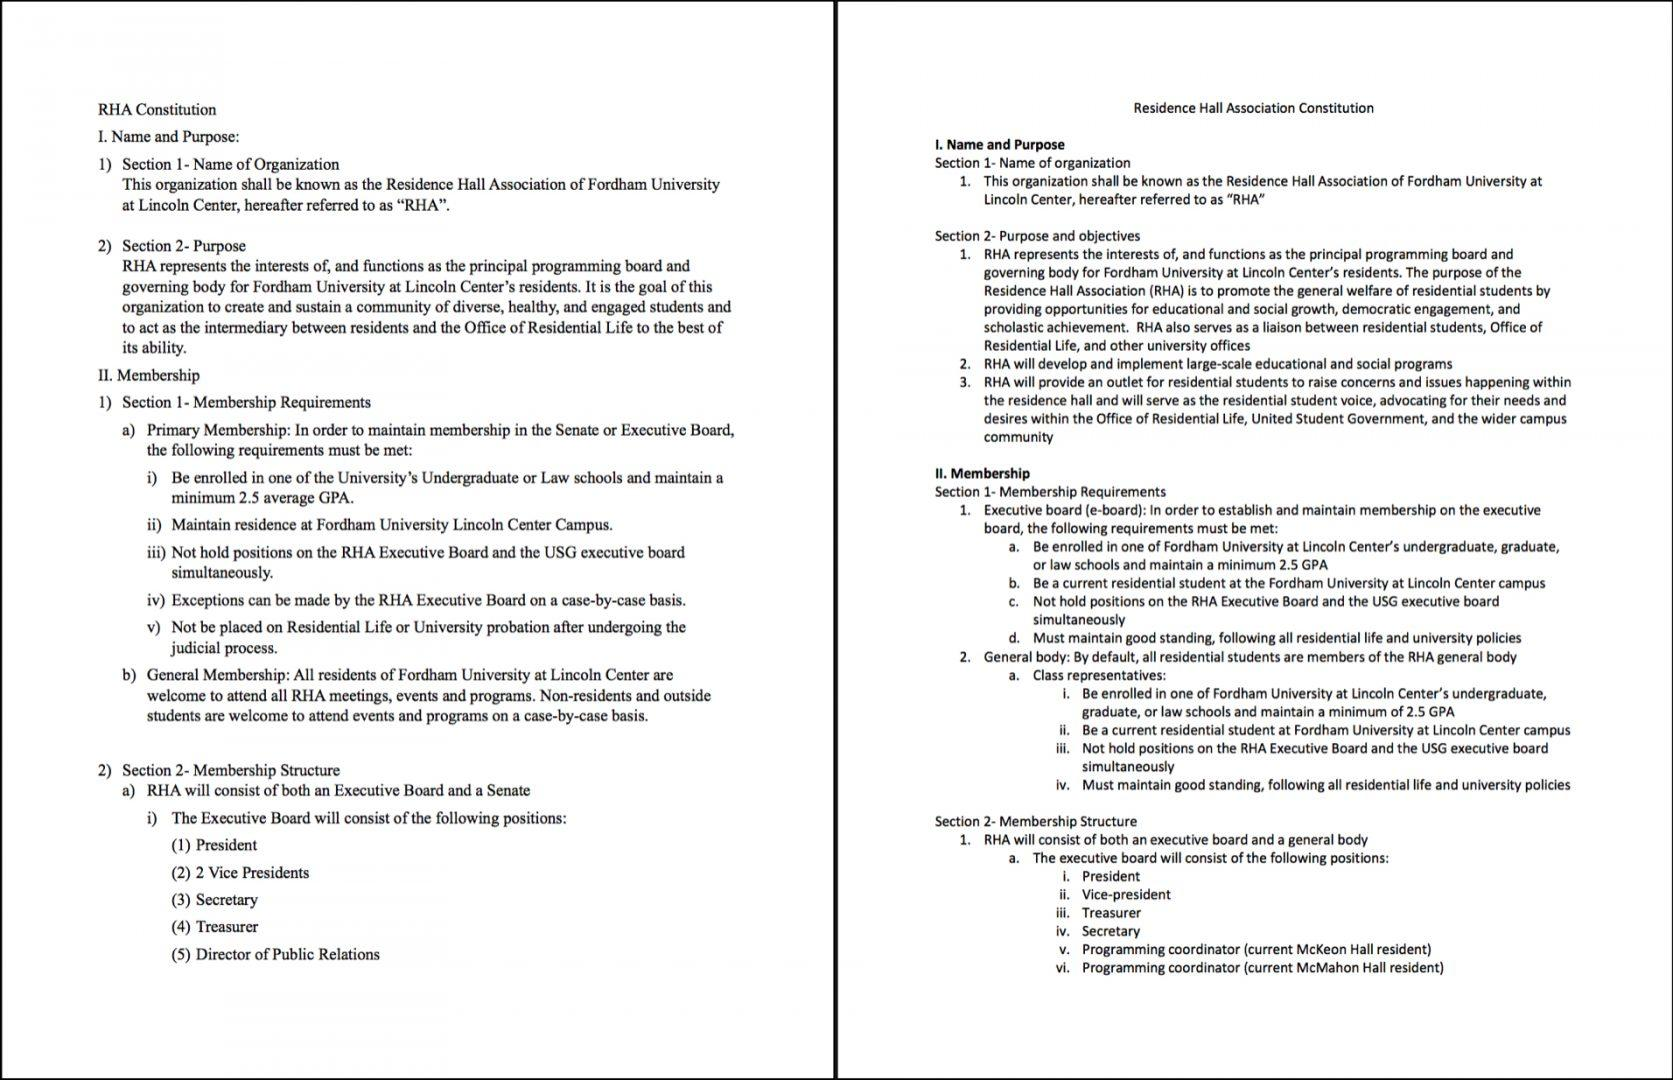 A Side-By-Side Comparison of RHA's Old and New Constitutions